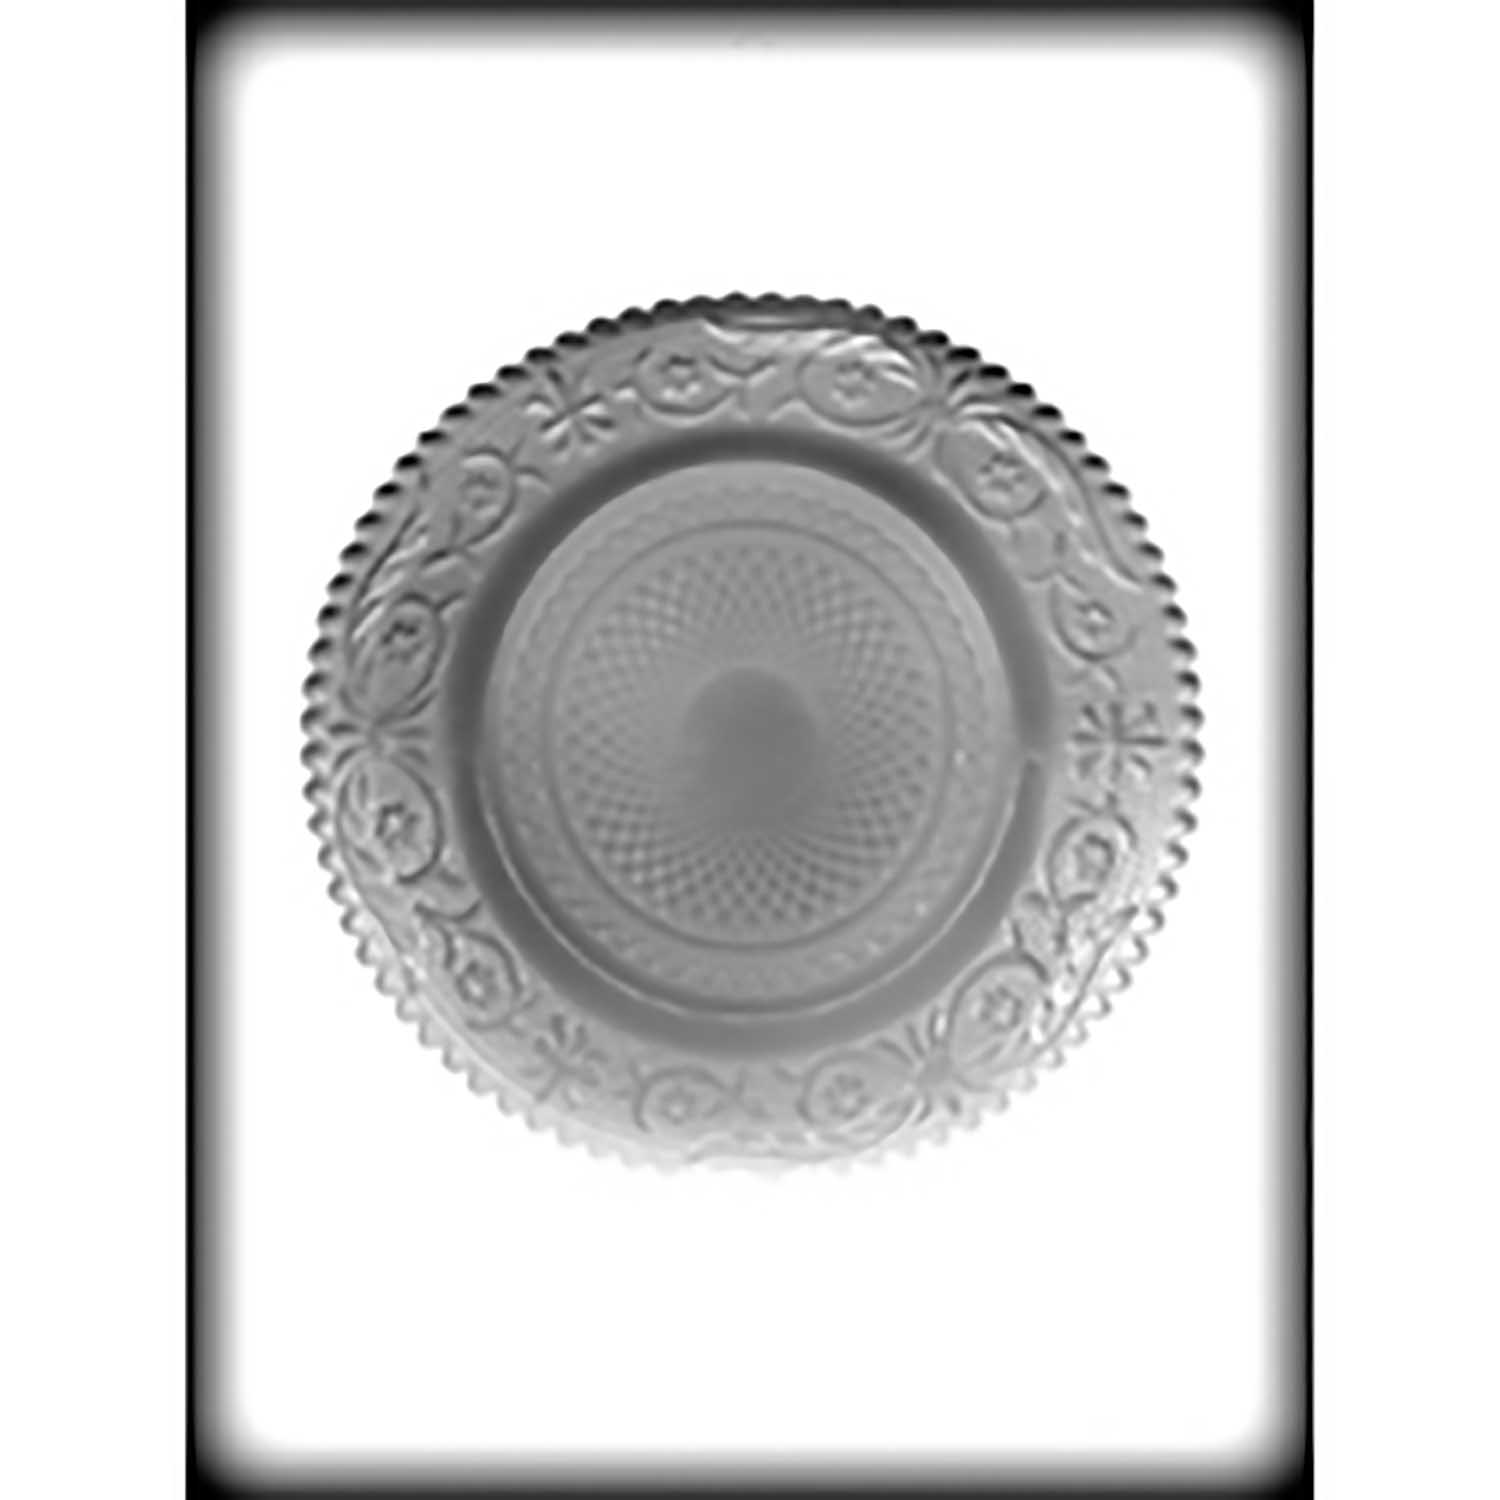 Hard Candy/Cookie Mold - Fancy Dish